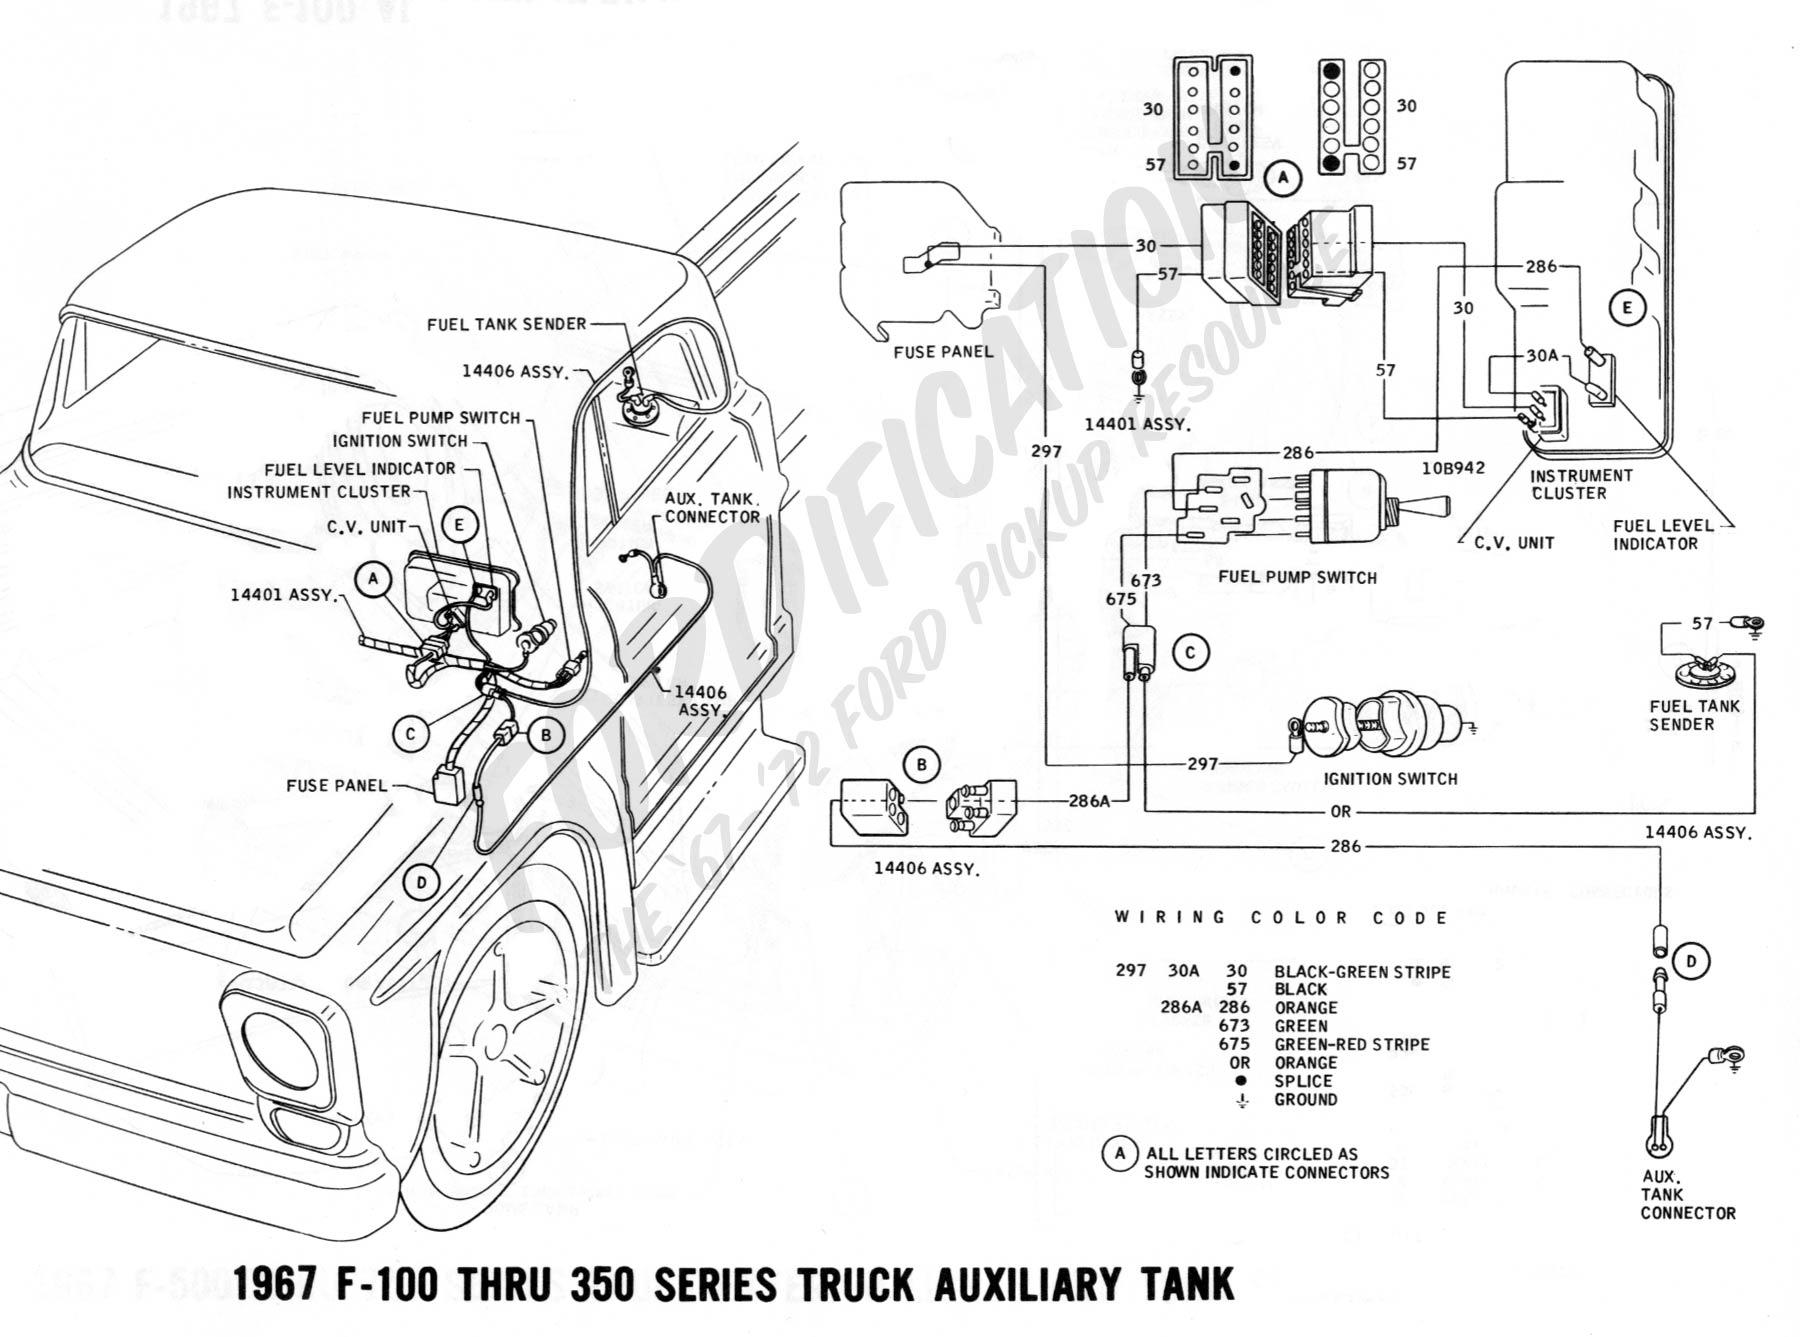 1974 Ford F 150 Wiper Motor Wiring Colors | Wiring Diagram Liries  Jeep Cj Wiring Diagram Color on 1977 jeep cj5 brake line diagram, painless wiring diagram, jeep cj5 dash wiring diagram, 1973 jeep cj5 wiring diagram, 1980 jeep cj5 wiring diagram, 1977 cj7 fuse diagram, 1975 jeep cj5 wiring diagram, 1974 jeep cj5 wiring diagram, 1994 jeep wrangler wiring diagram, 1981 jeep cj5 wiring diagram, 1971 jeep cj5 wiring diagram, 1983 jeep cj5 wiring diagram, 1977 jeep j10 wiring diagram, 1978 jeep cj5 wiring diagram, 1977 jeep cherokee chief wiring diagram, 1967 jeep cj5 wiring diagram, 1955 jeep cj5 wiring diagram, jeep cj7 fuse box diagram, 1976 jeep wiring diagram, cj5 fuel gauge wiring diagram,